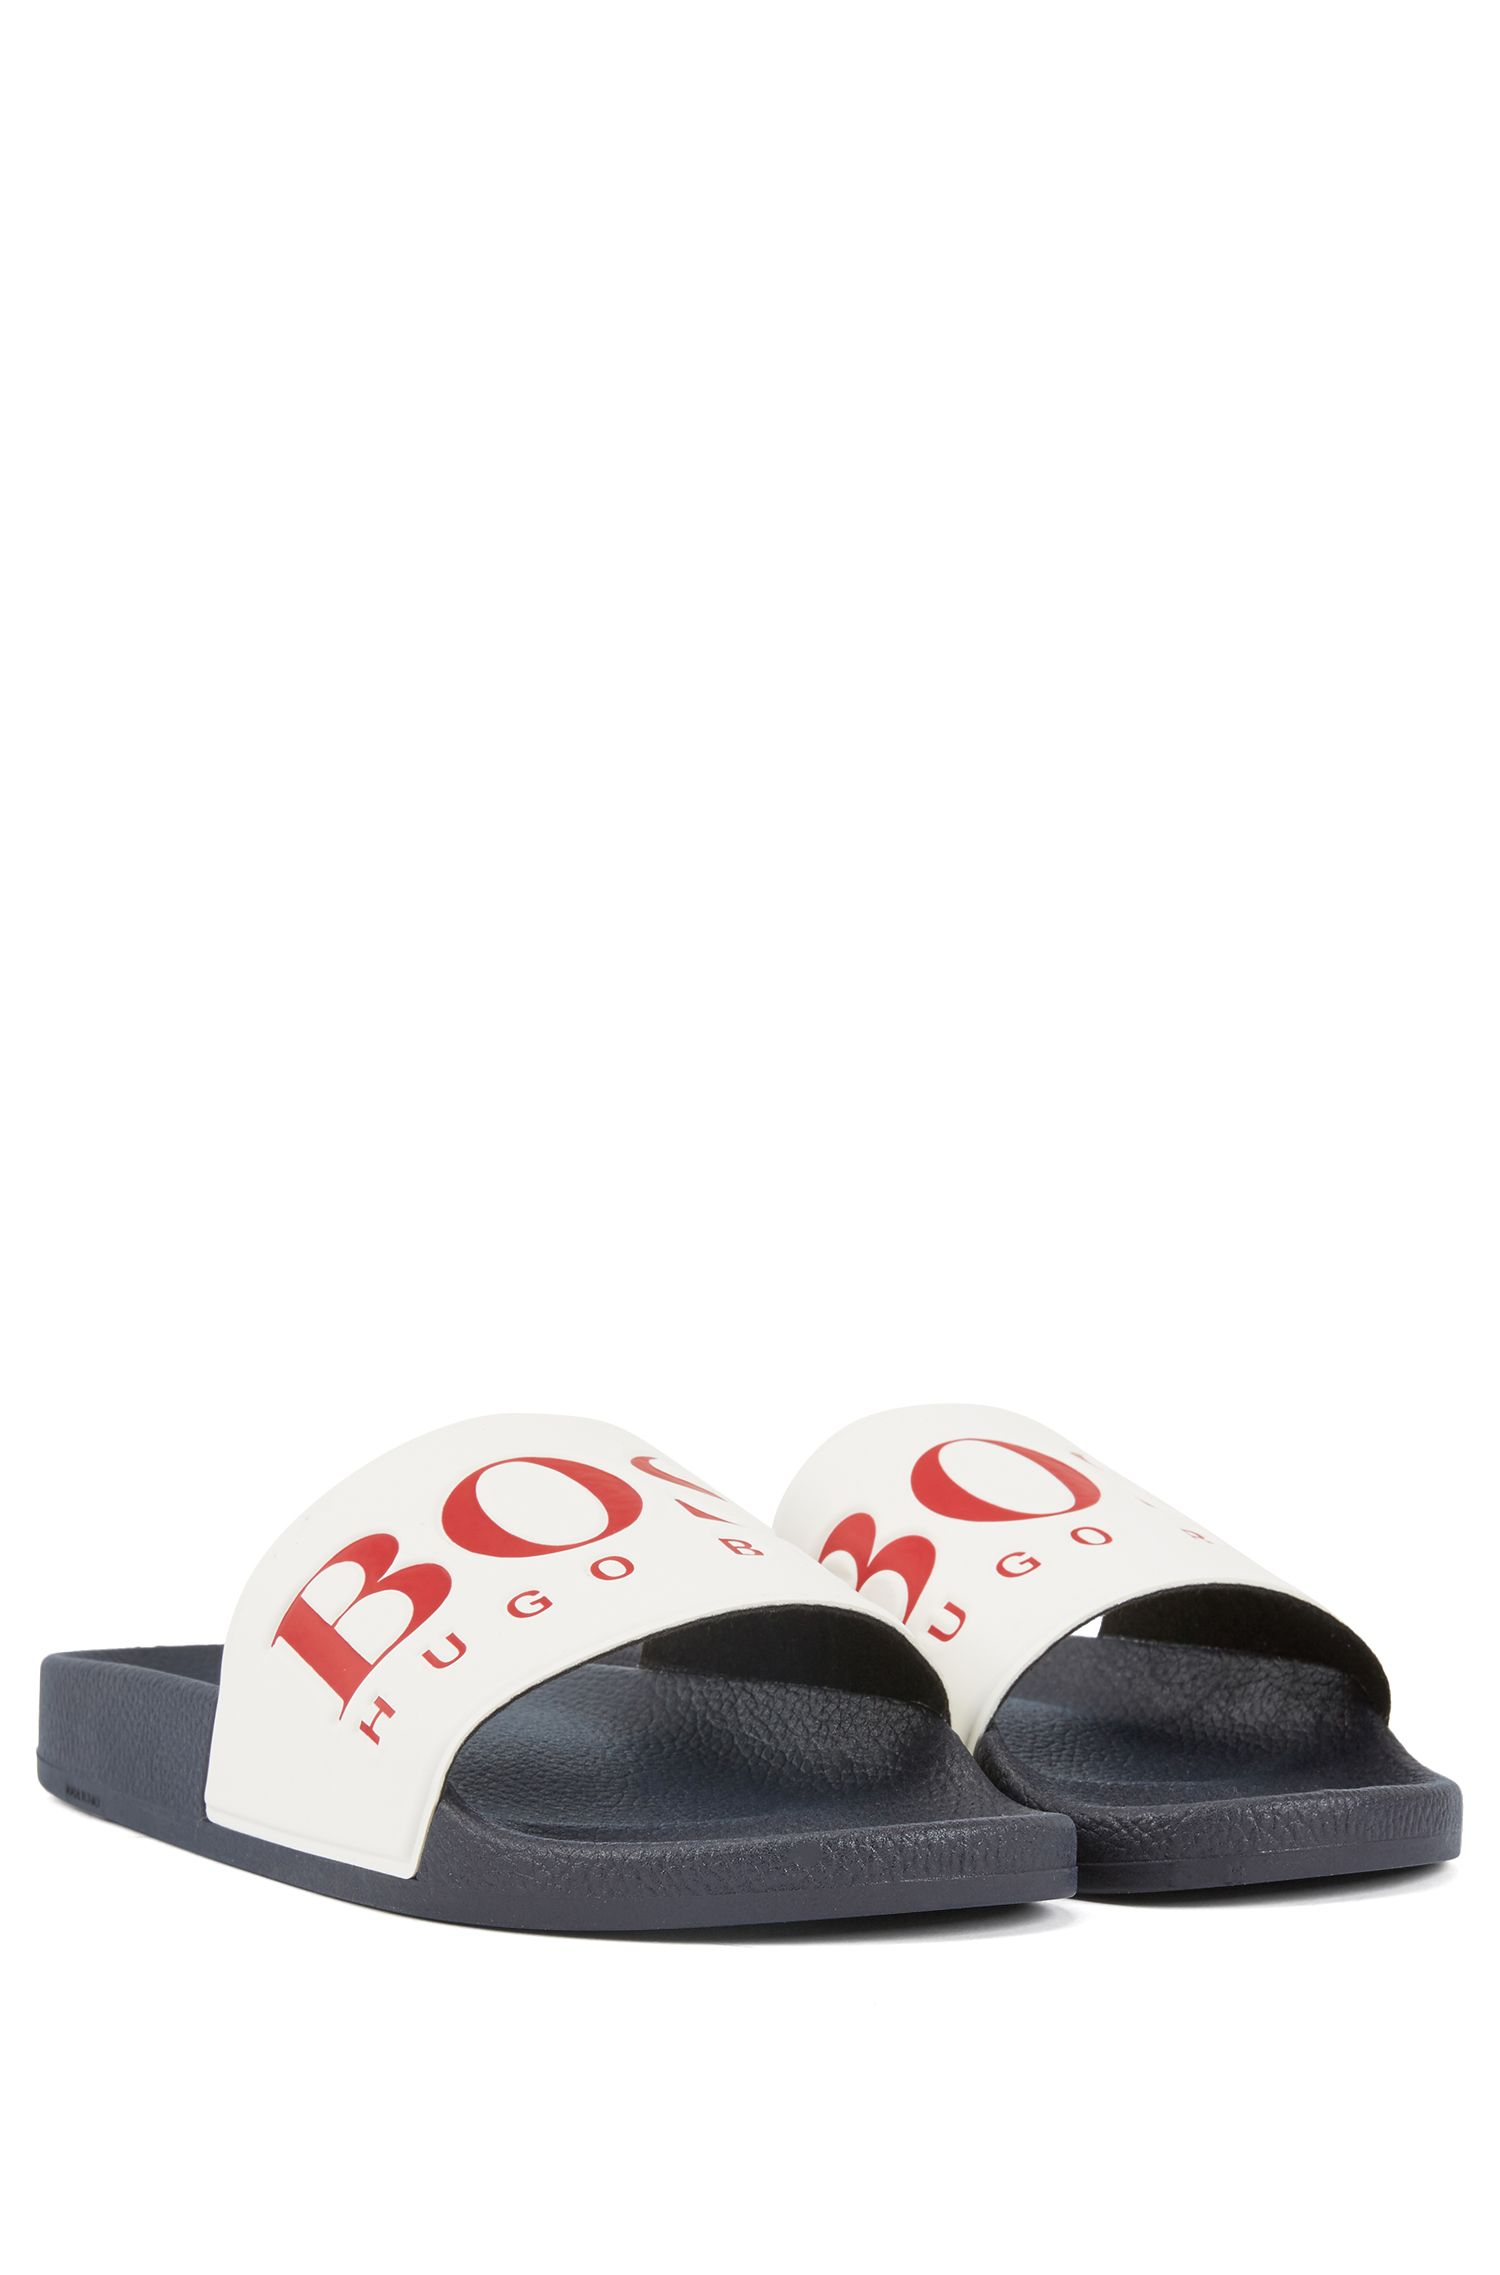 Italian-made rubber slide sandals with contrast logo, Blue